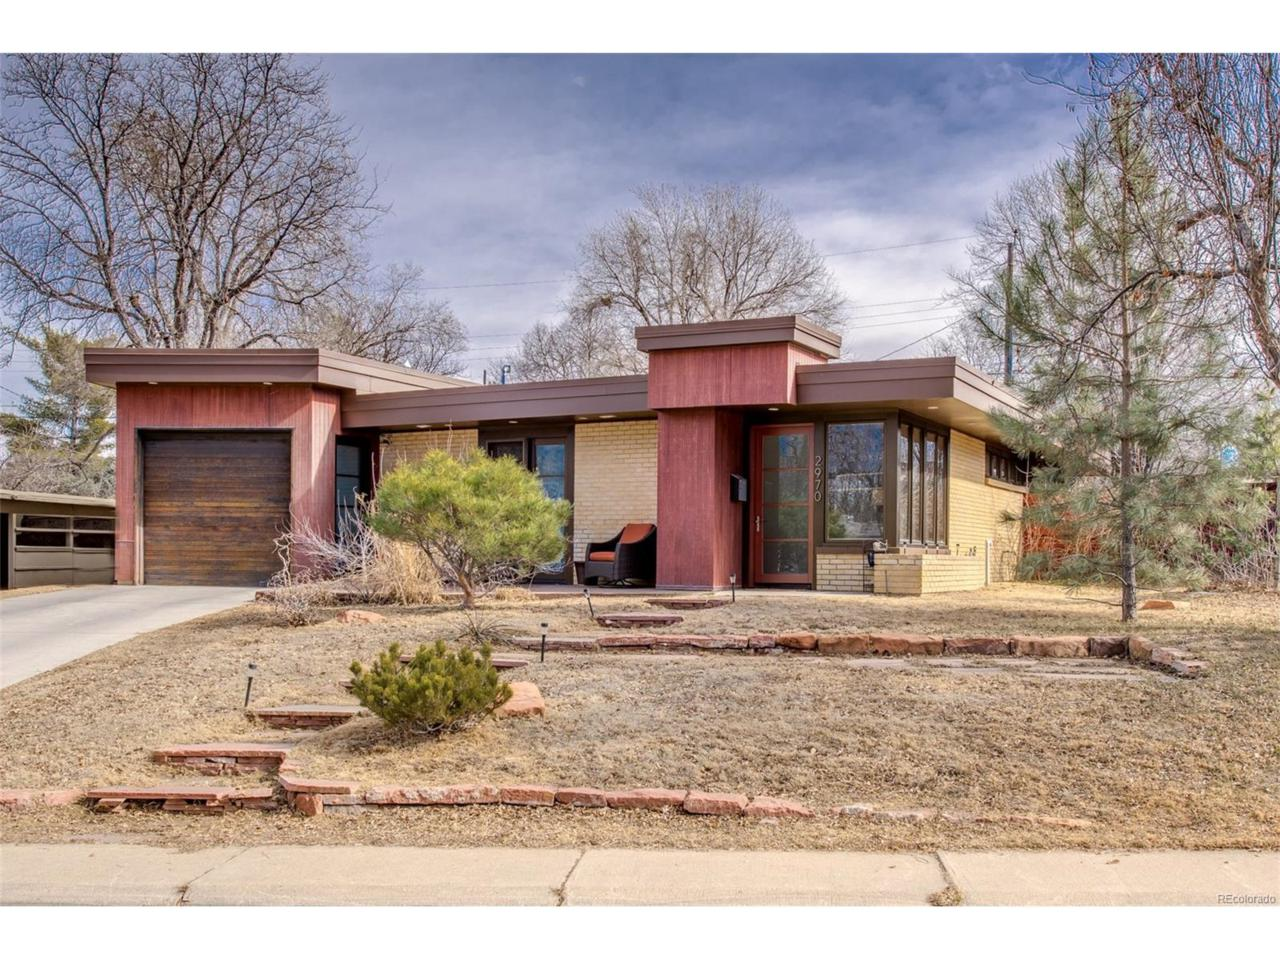 2970 S Marion Street, Englewood, CO 80113 (MLS #3458032) :: 8z Real Estate